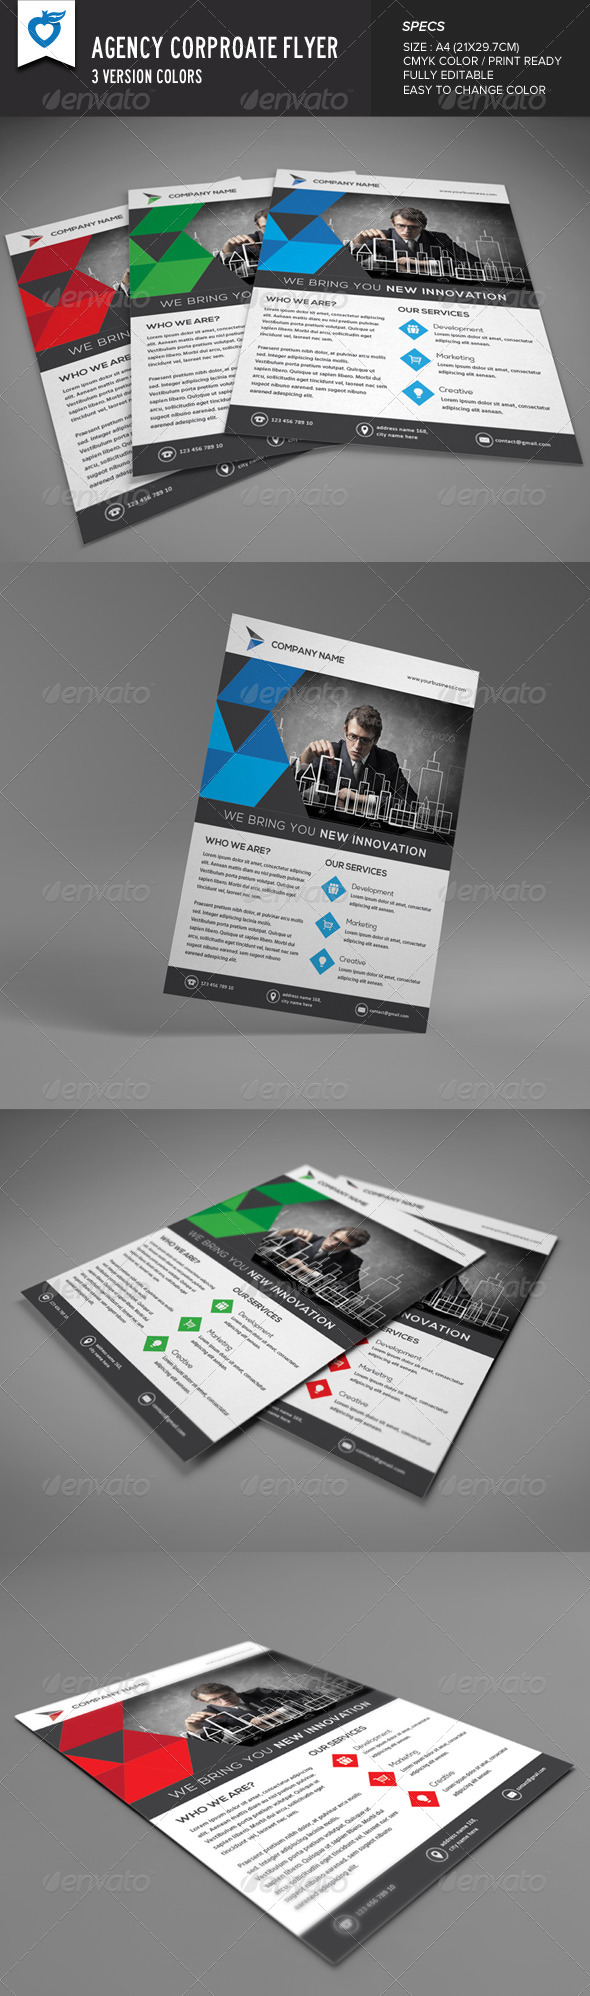 GraphicRiver Agency Corporate Flyer 8422551